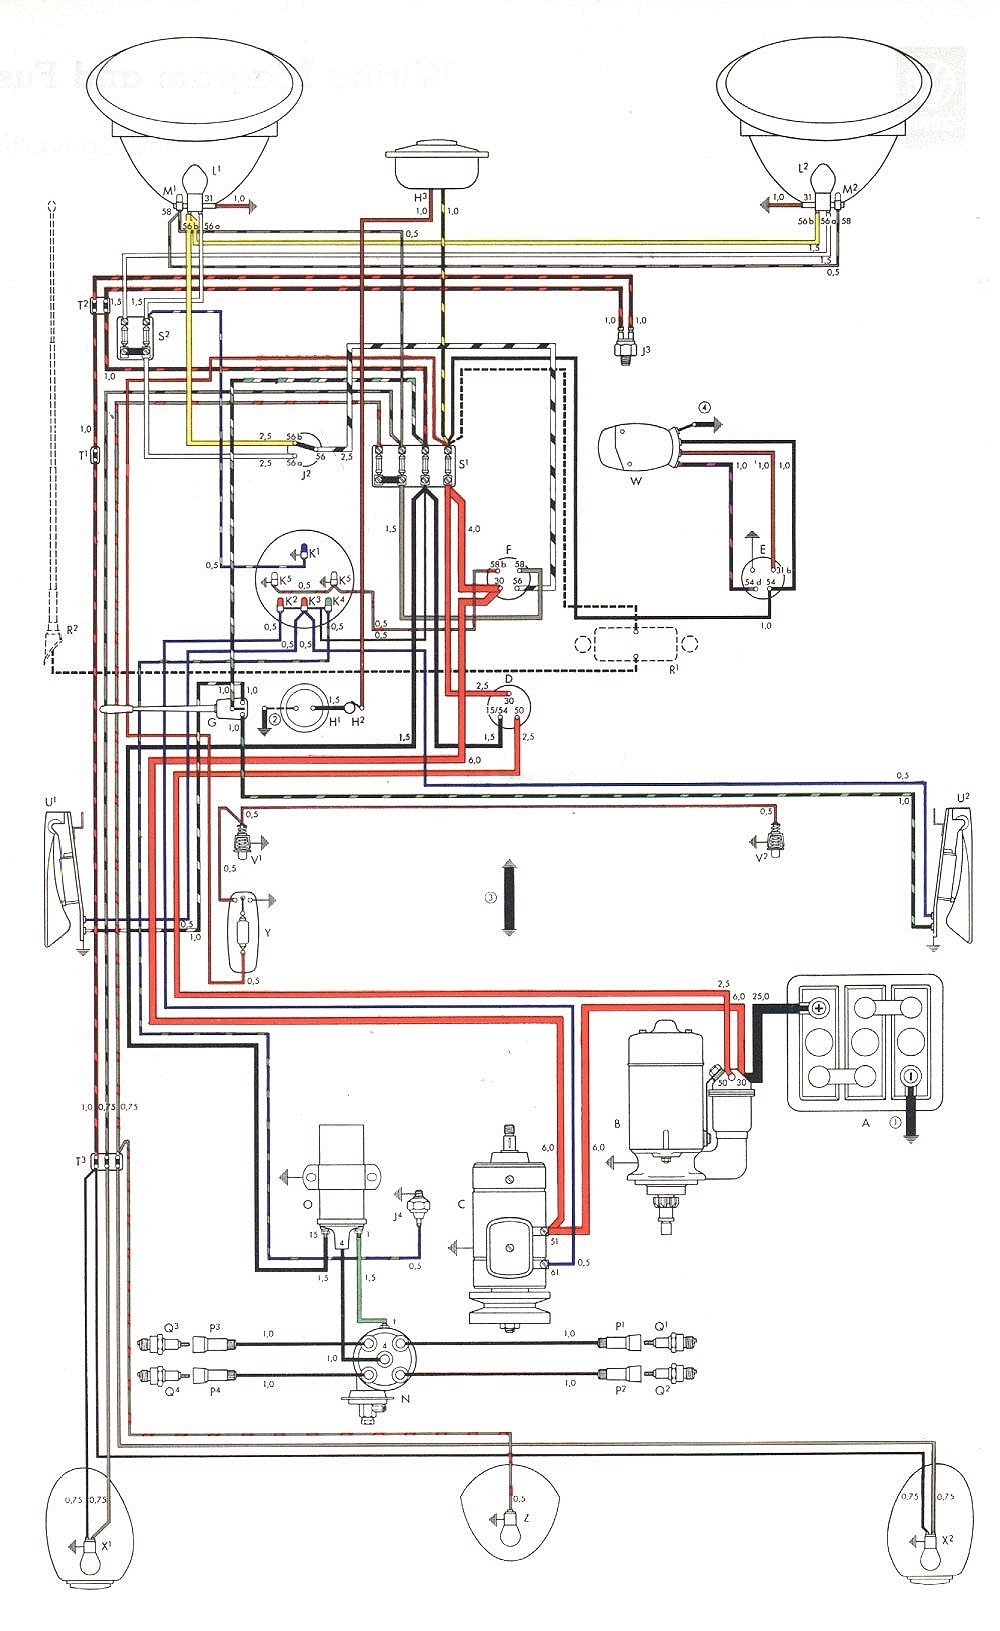 1966 vw beetle wiring diagram